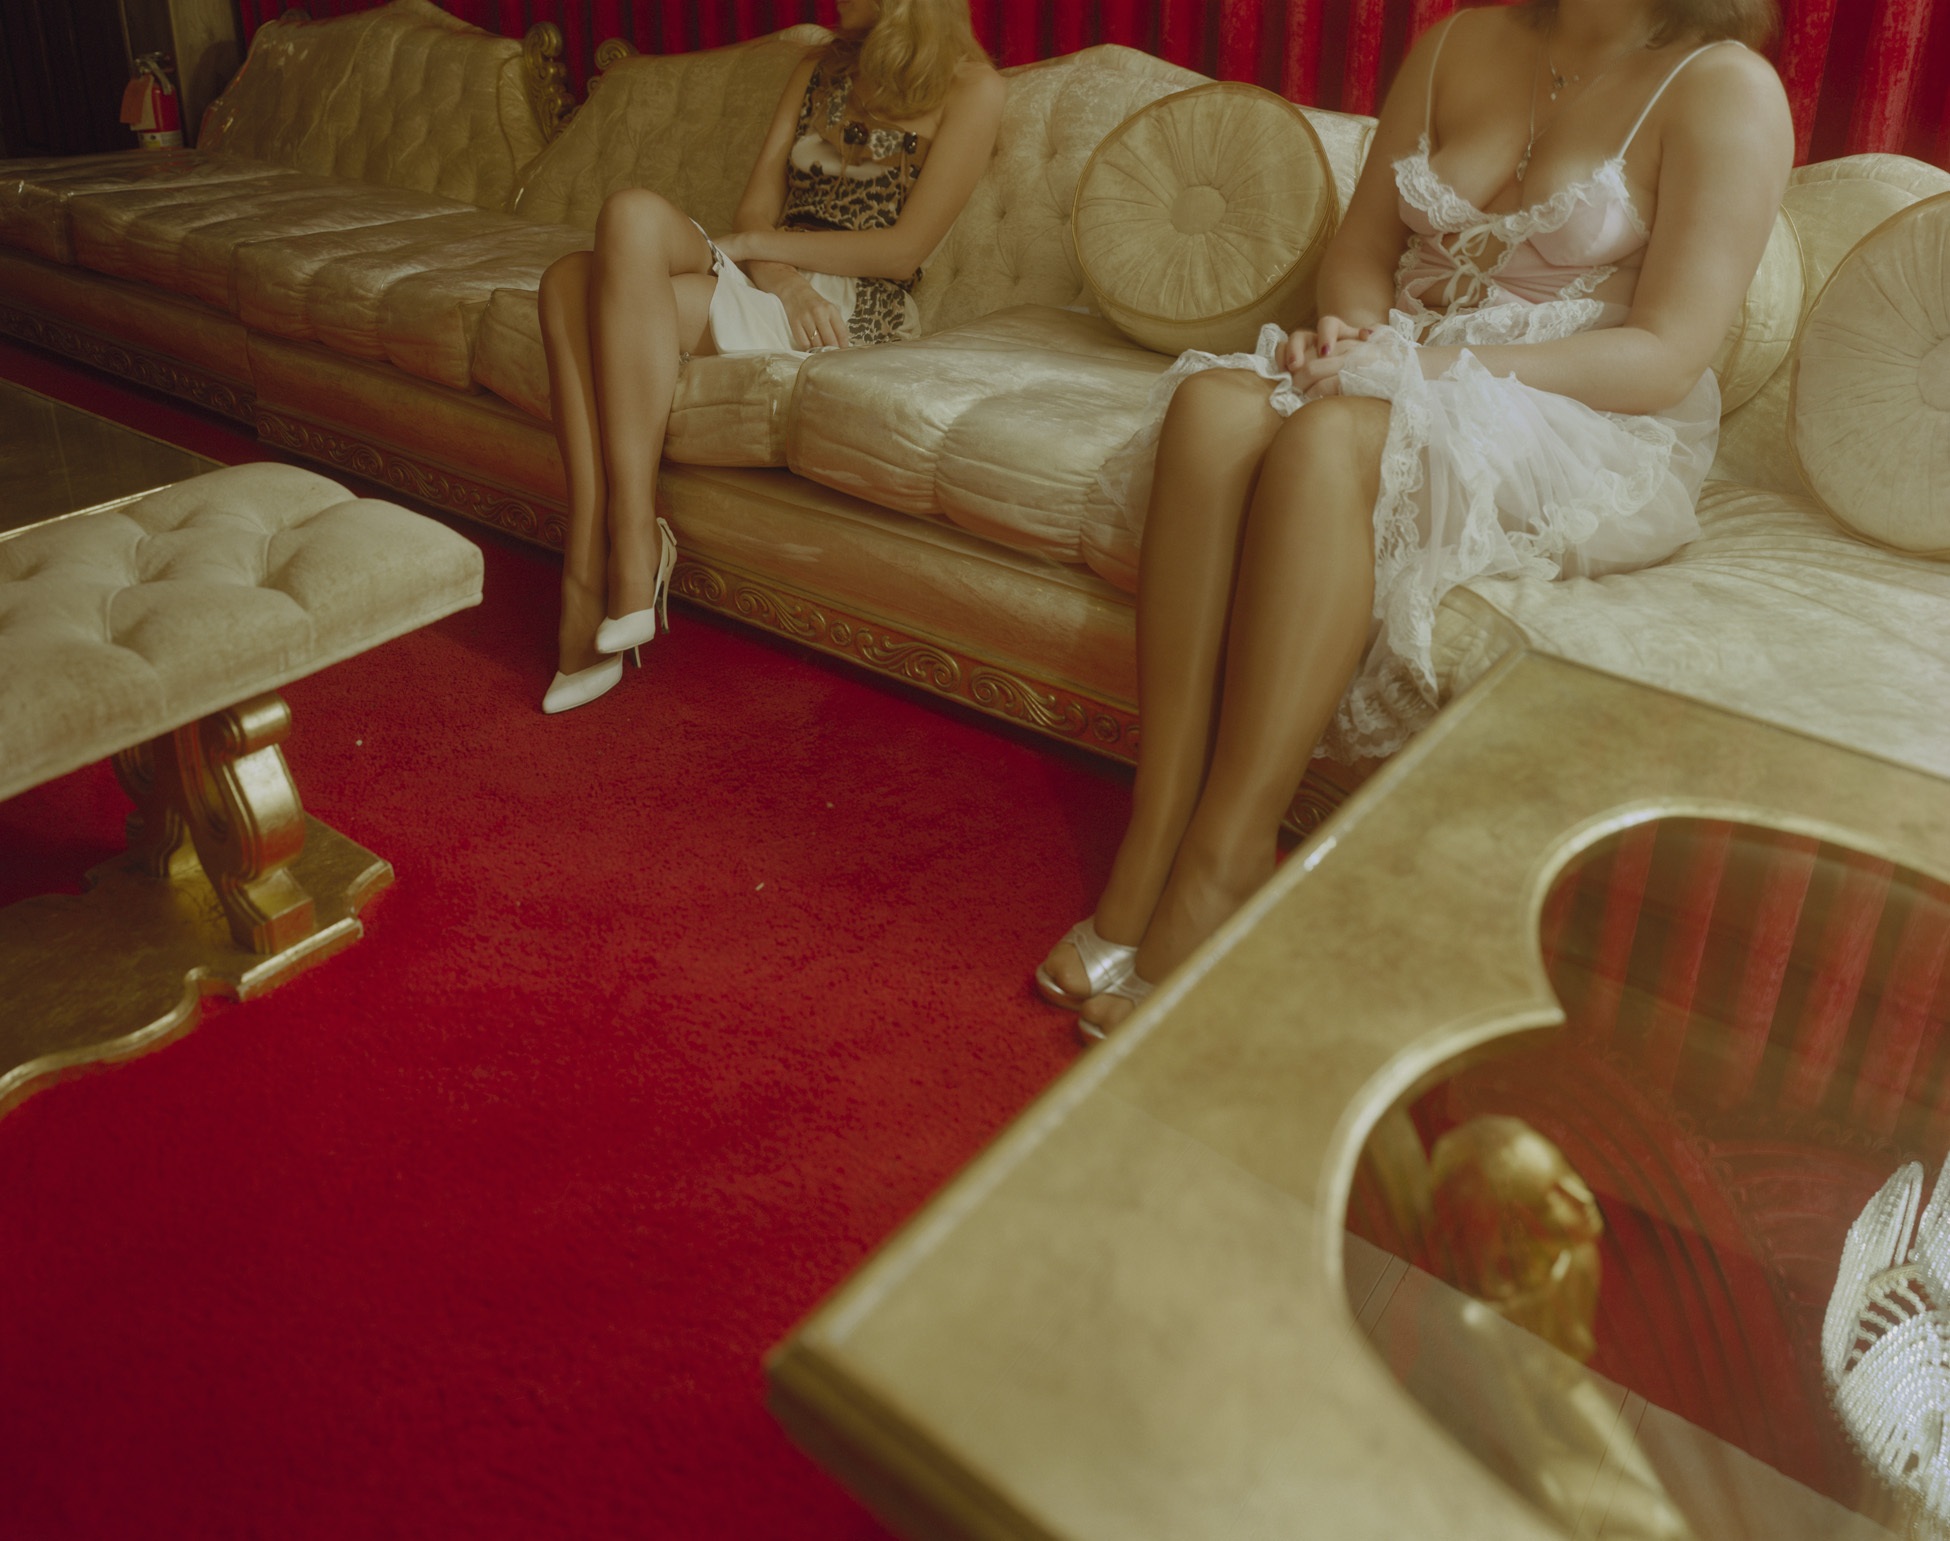 Girls in Parlor